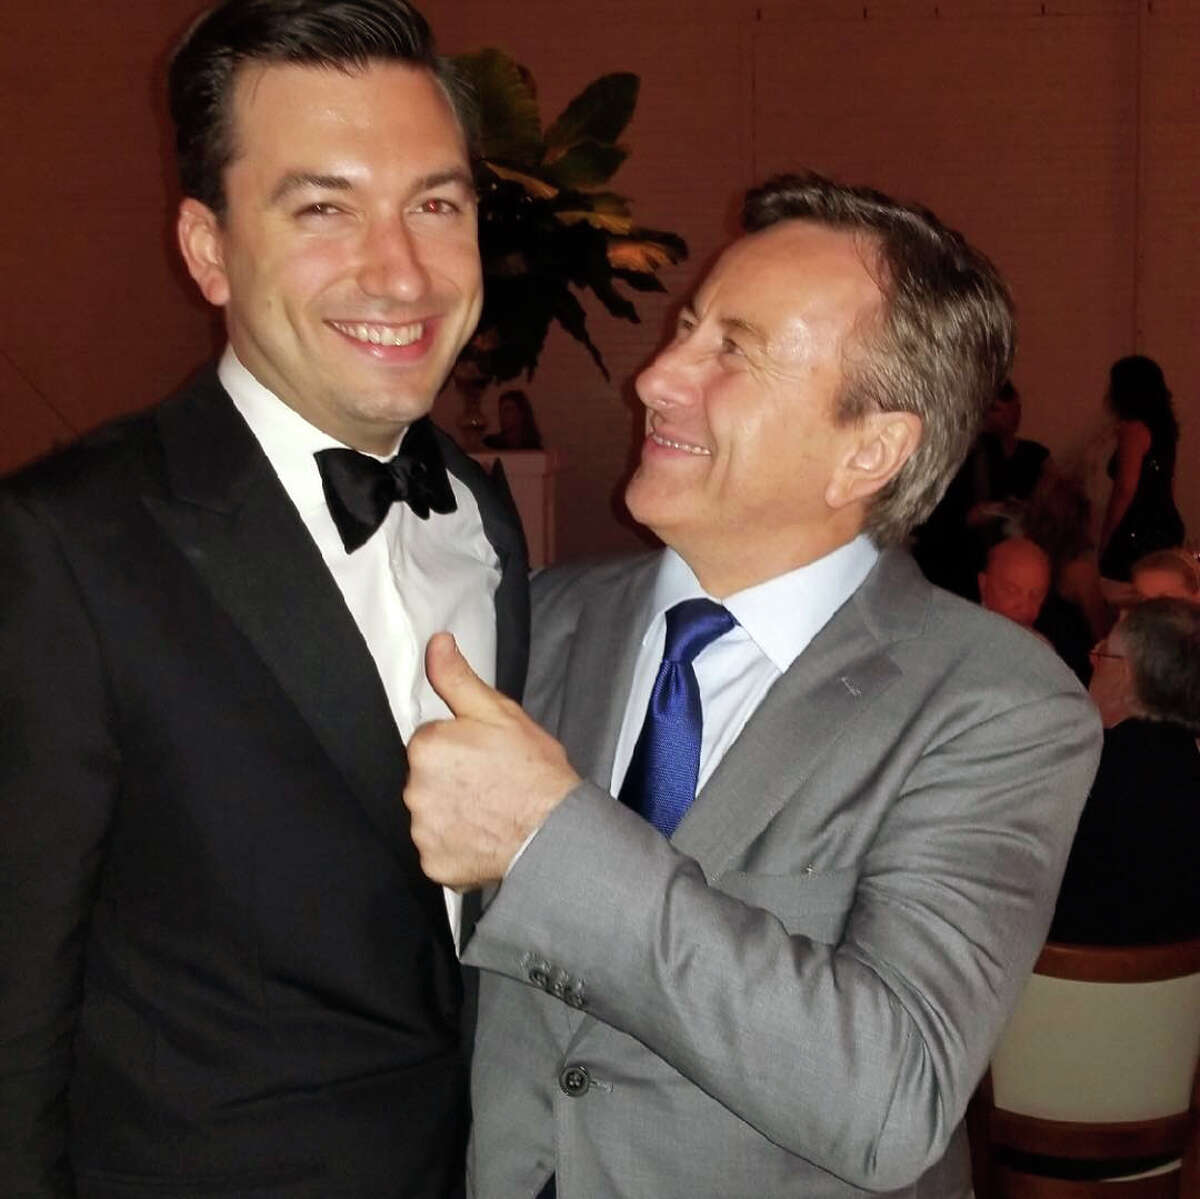 A graduate of the Culinary Institute of America in Hyde Park, New York, Bludorn's stellar resume includes working under two Michelin-starred chefs: Douglas Keen at Napa's Cyrus Restaurant and chef Daniel Boulud (pictured here on right) at the classic French restaurant, Café Boulud.